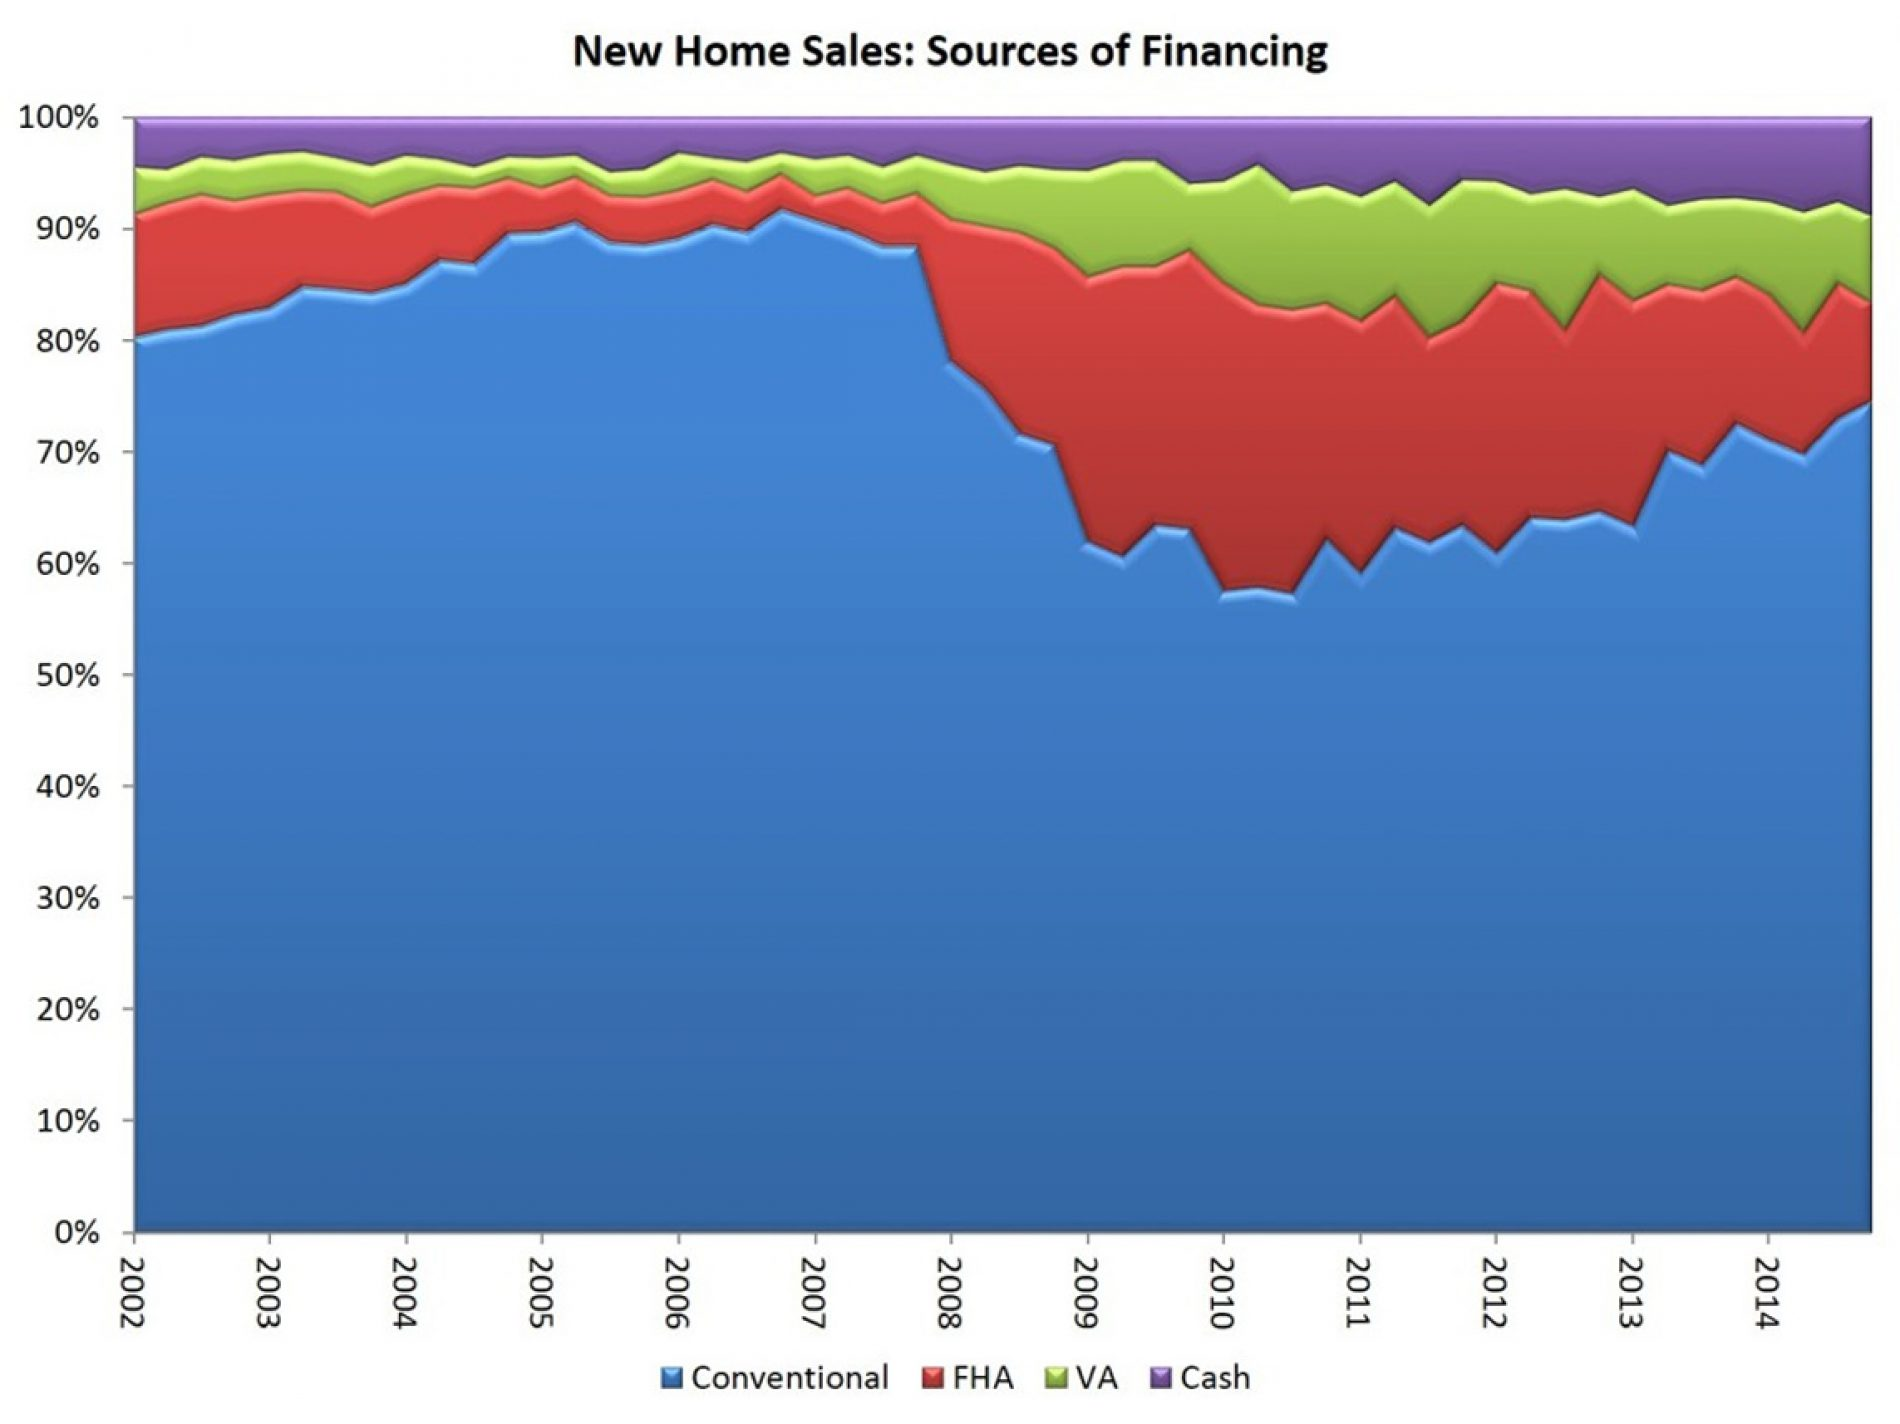 Conventional Financing Gains Ground